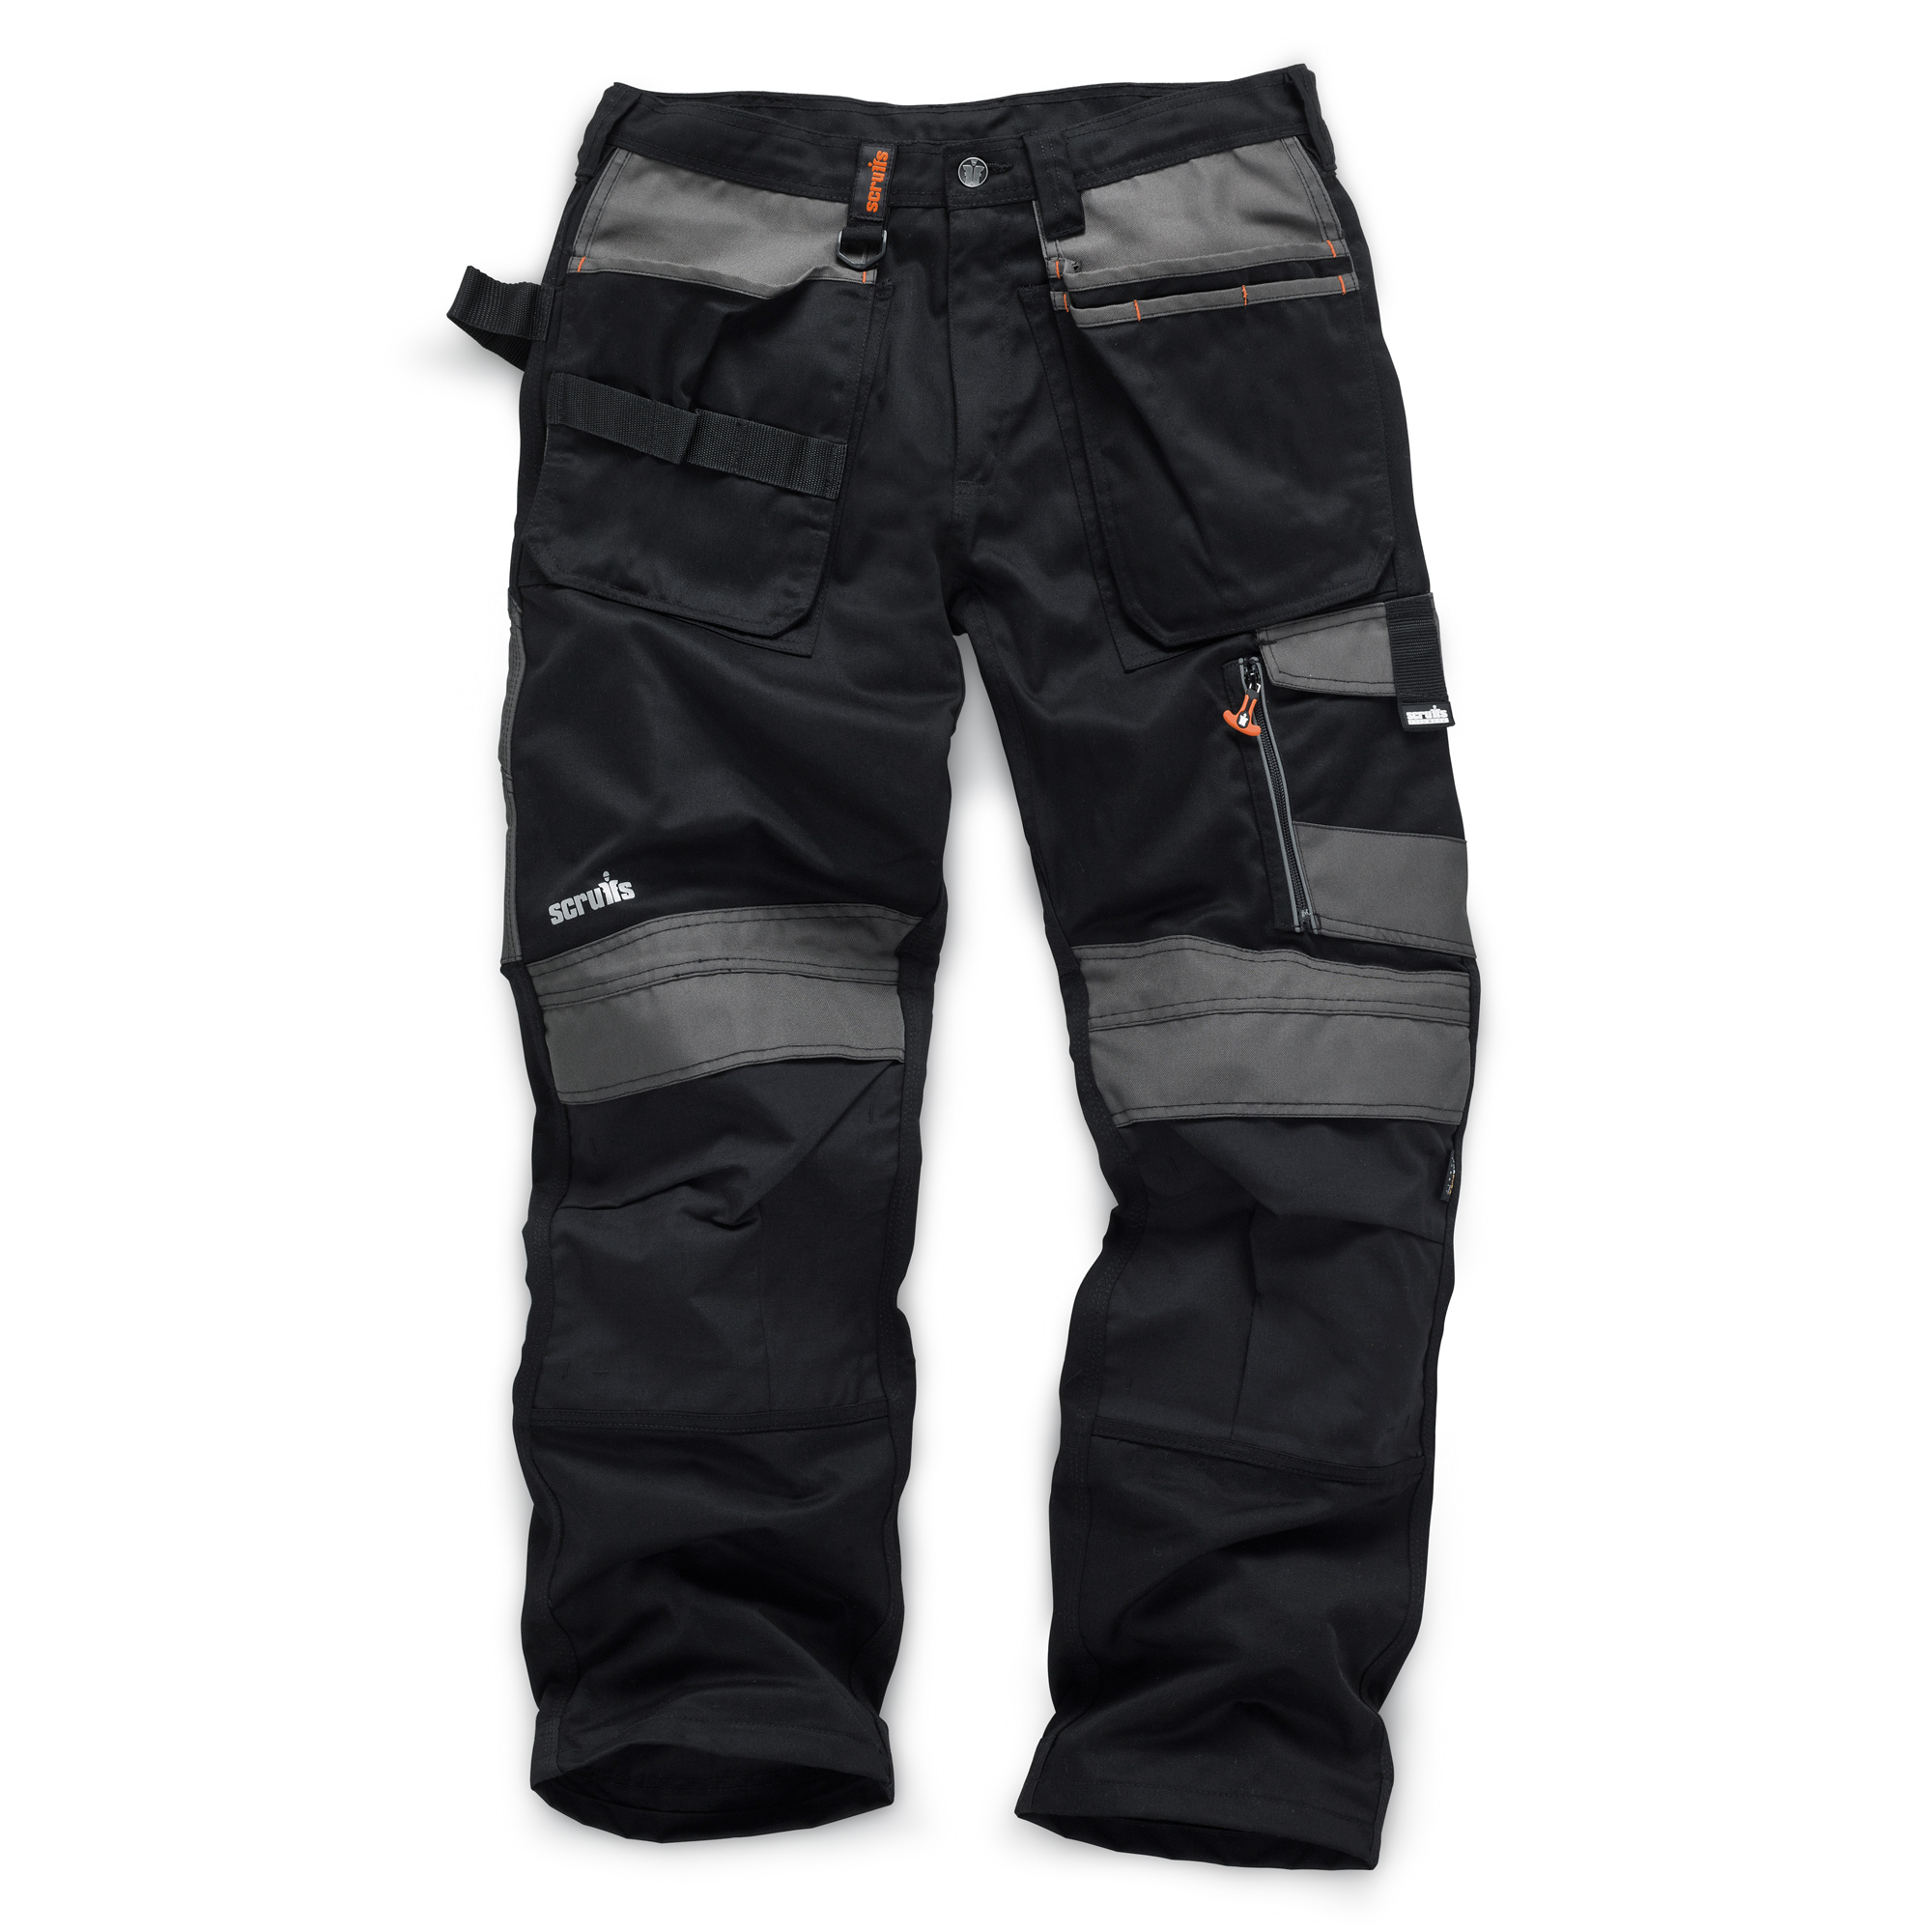 Scruffs 3D TRADE BLACK Cargo //Combat Work Trousers with FREE FACE MORF